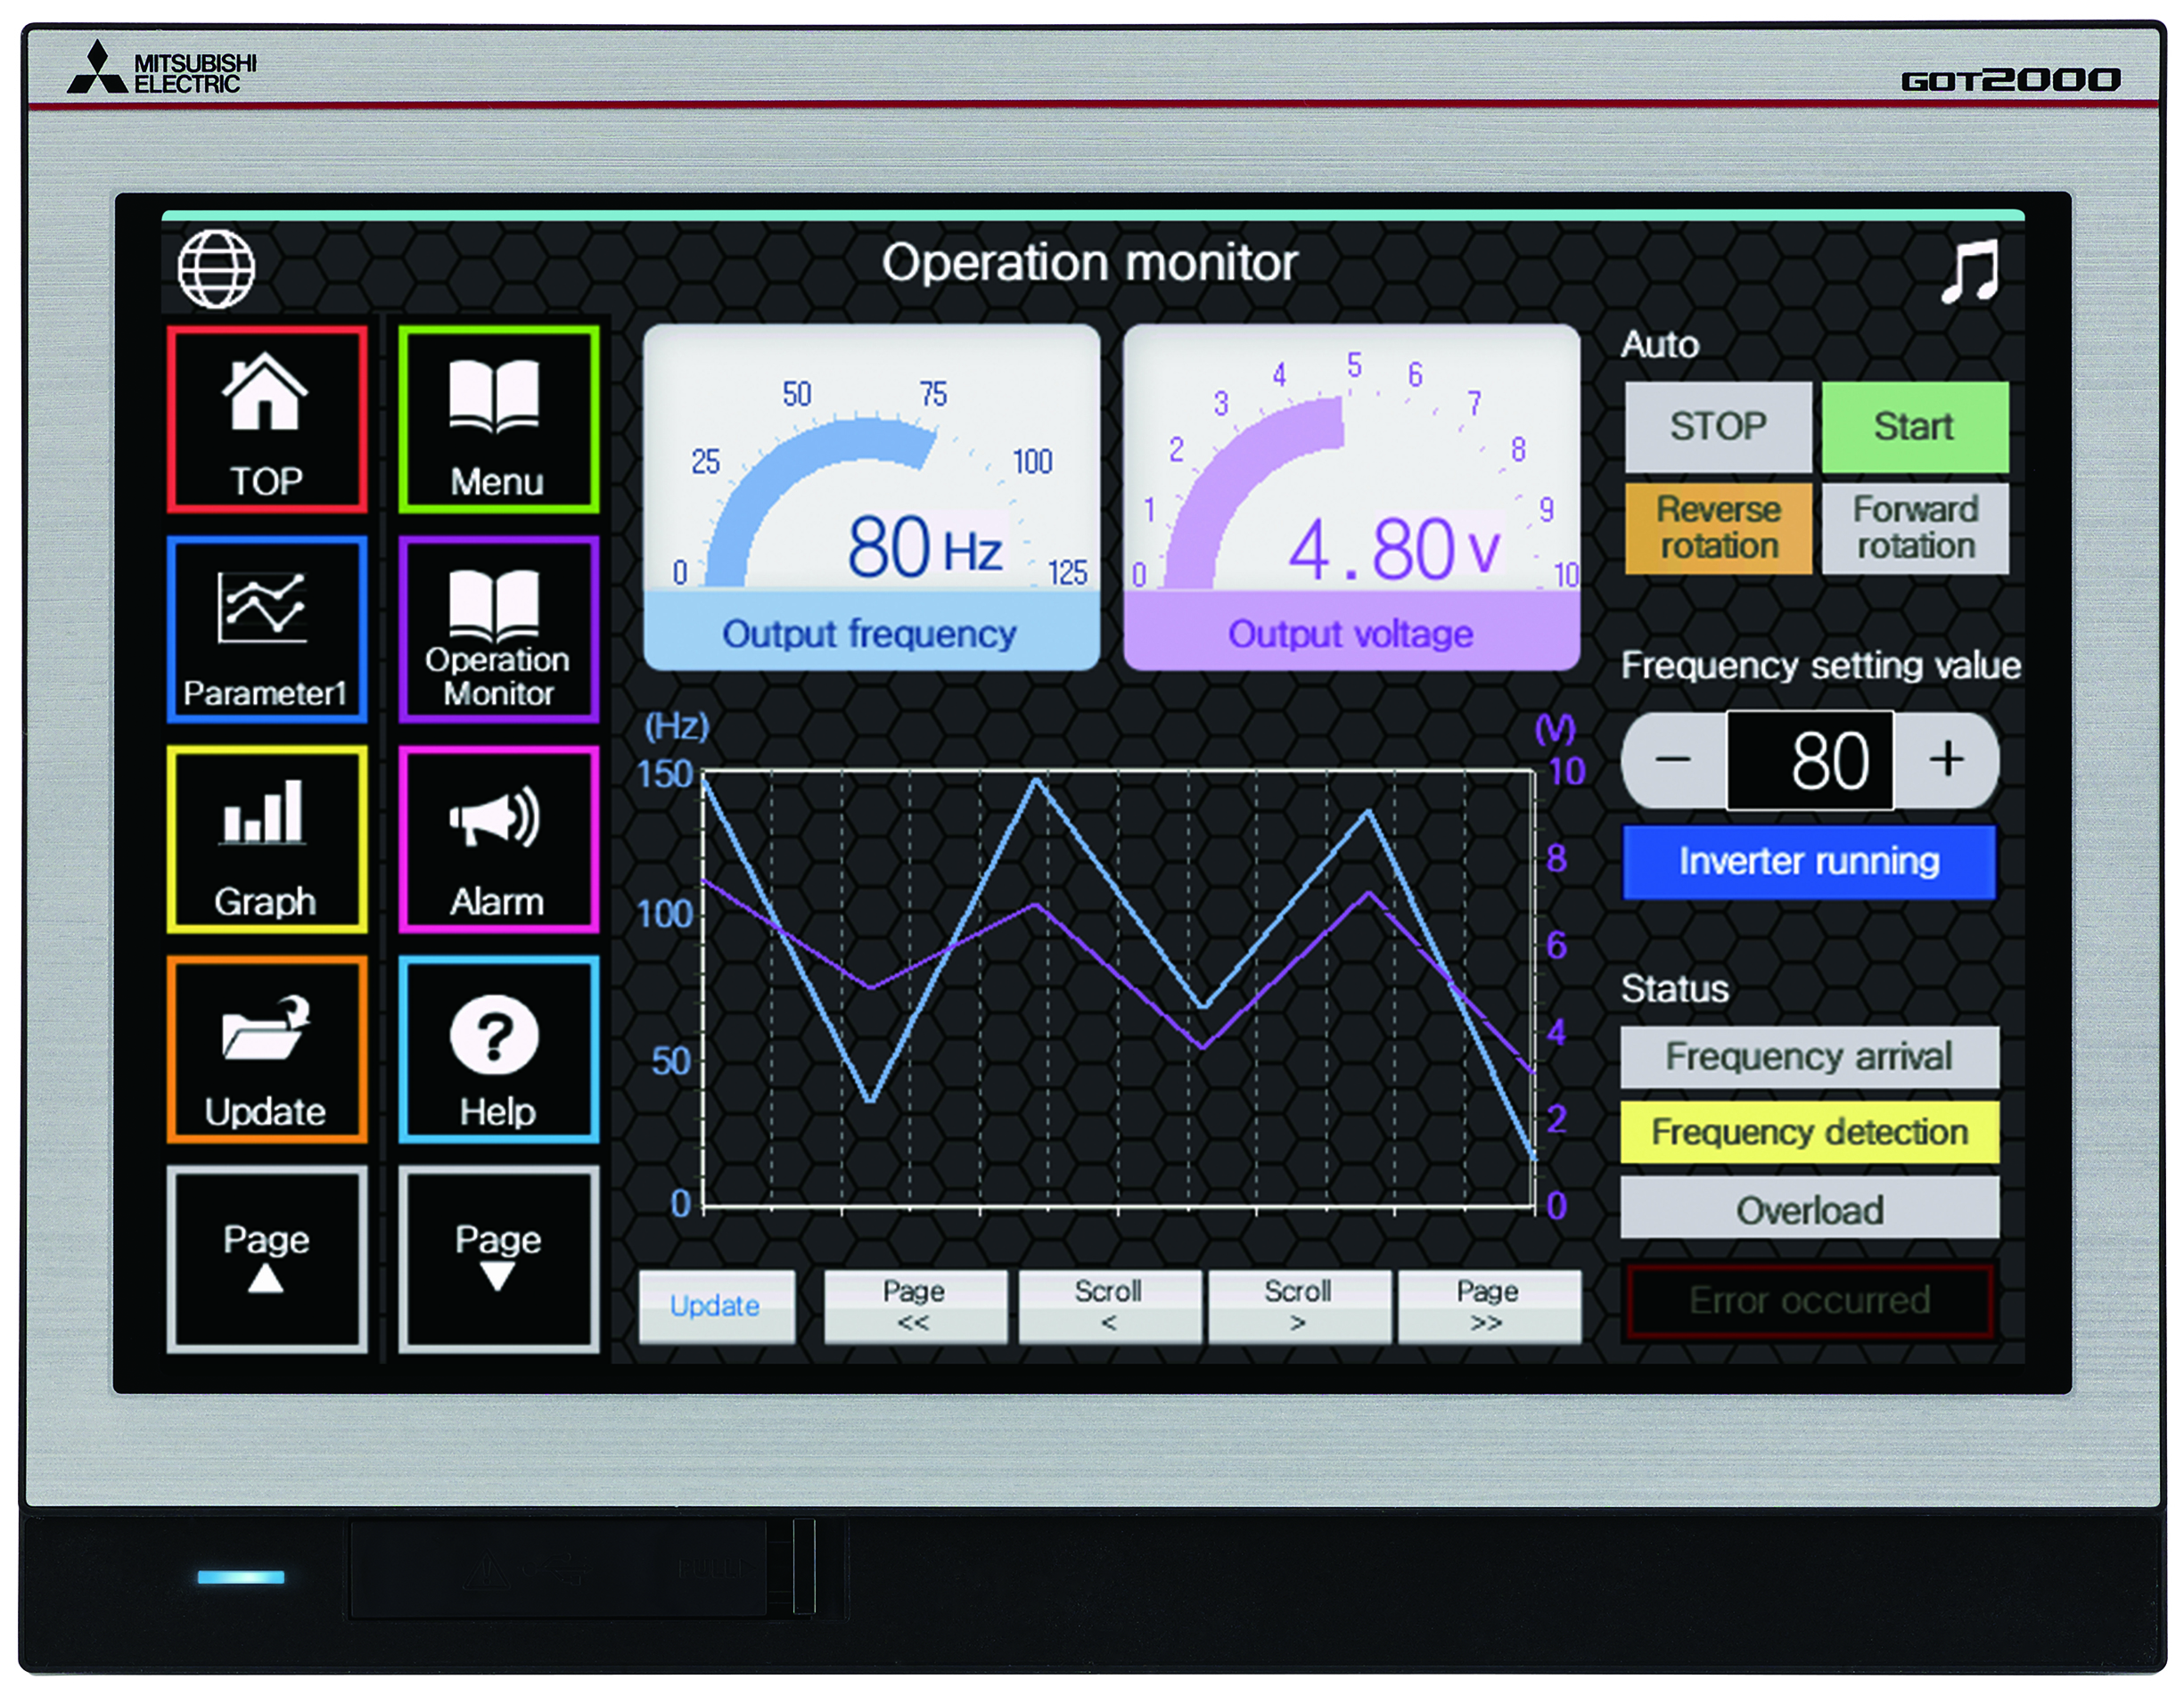 New widescreen HMIs from Mitsubishi are stylish and feature packed